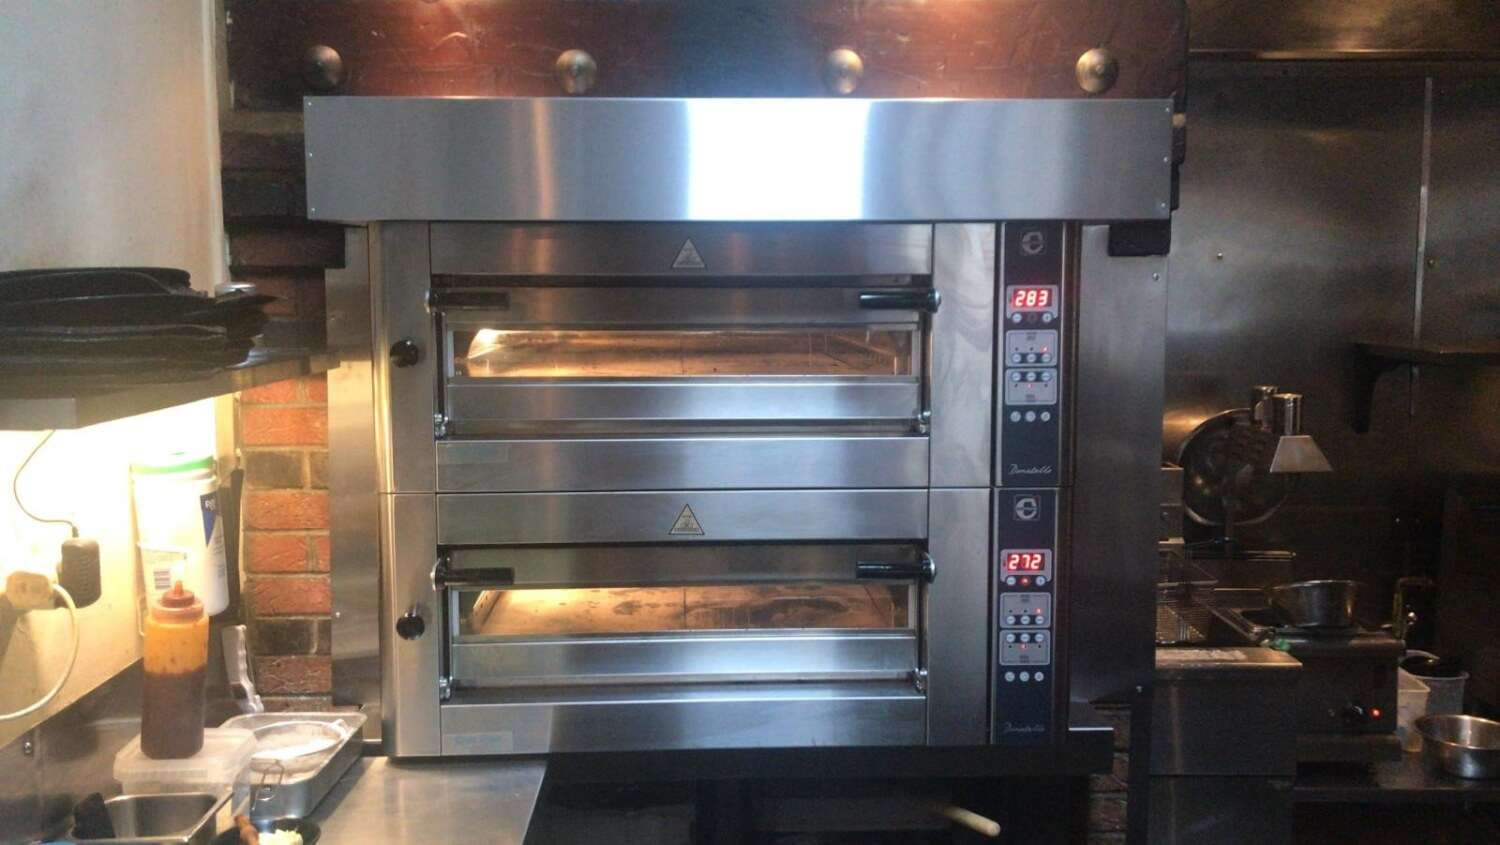 Firehouse Rotisserie Pizza Oven - Rpundstone Catering